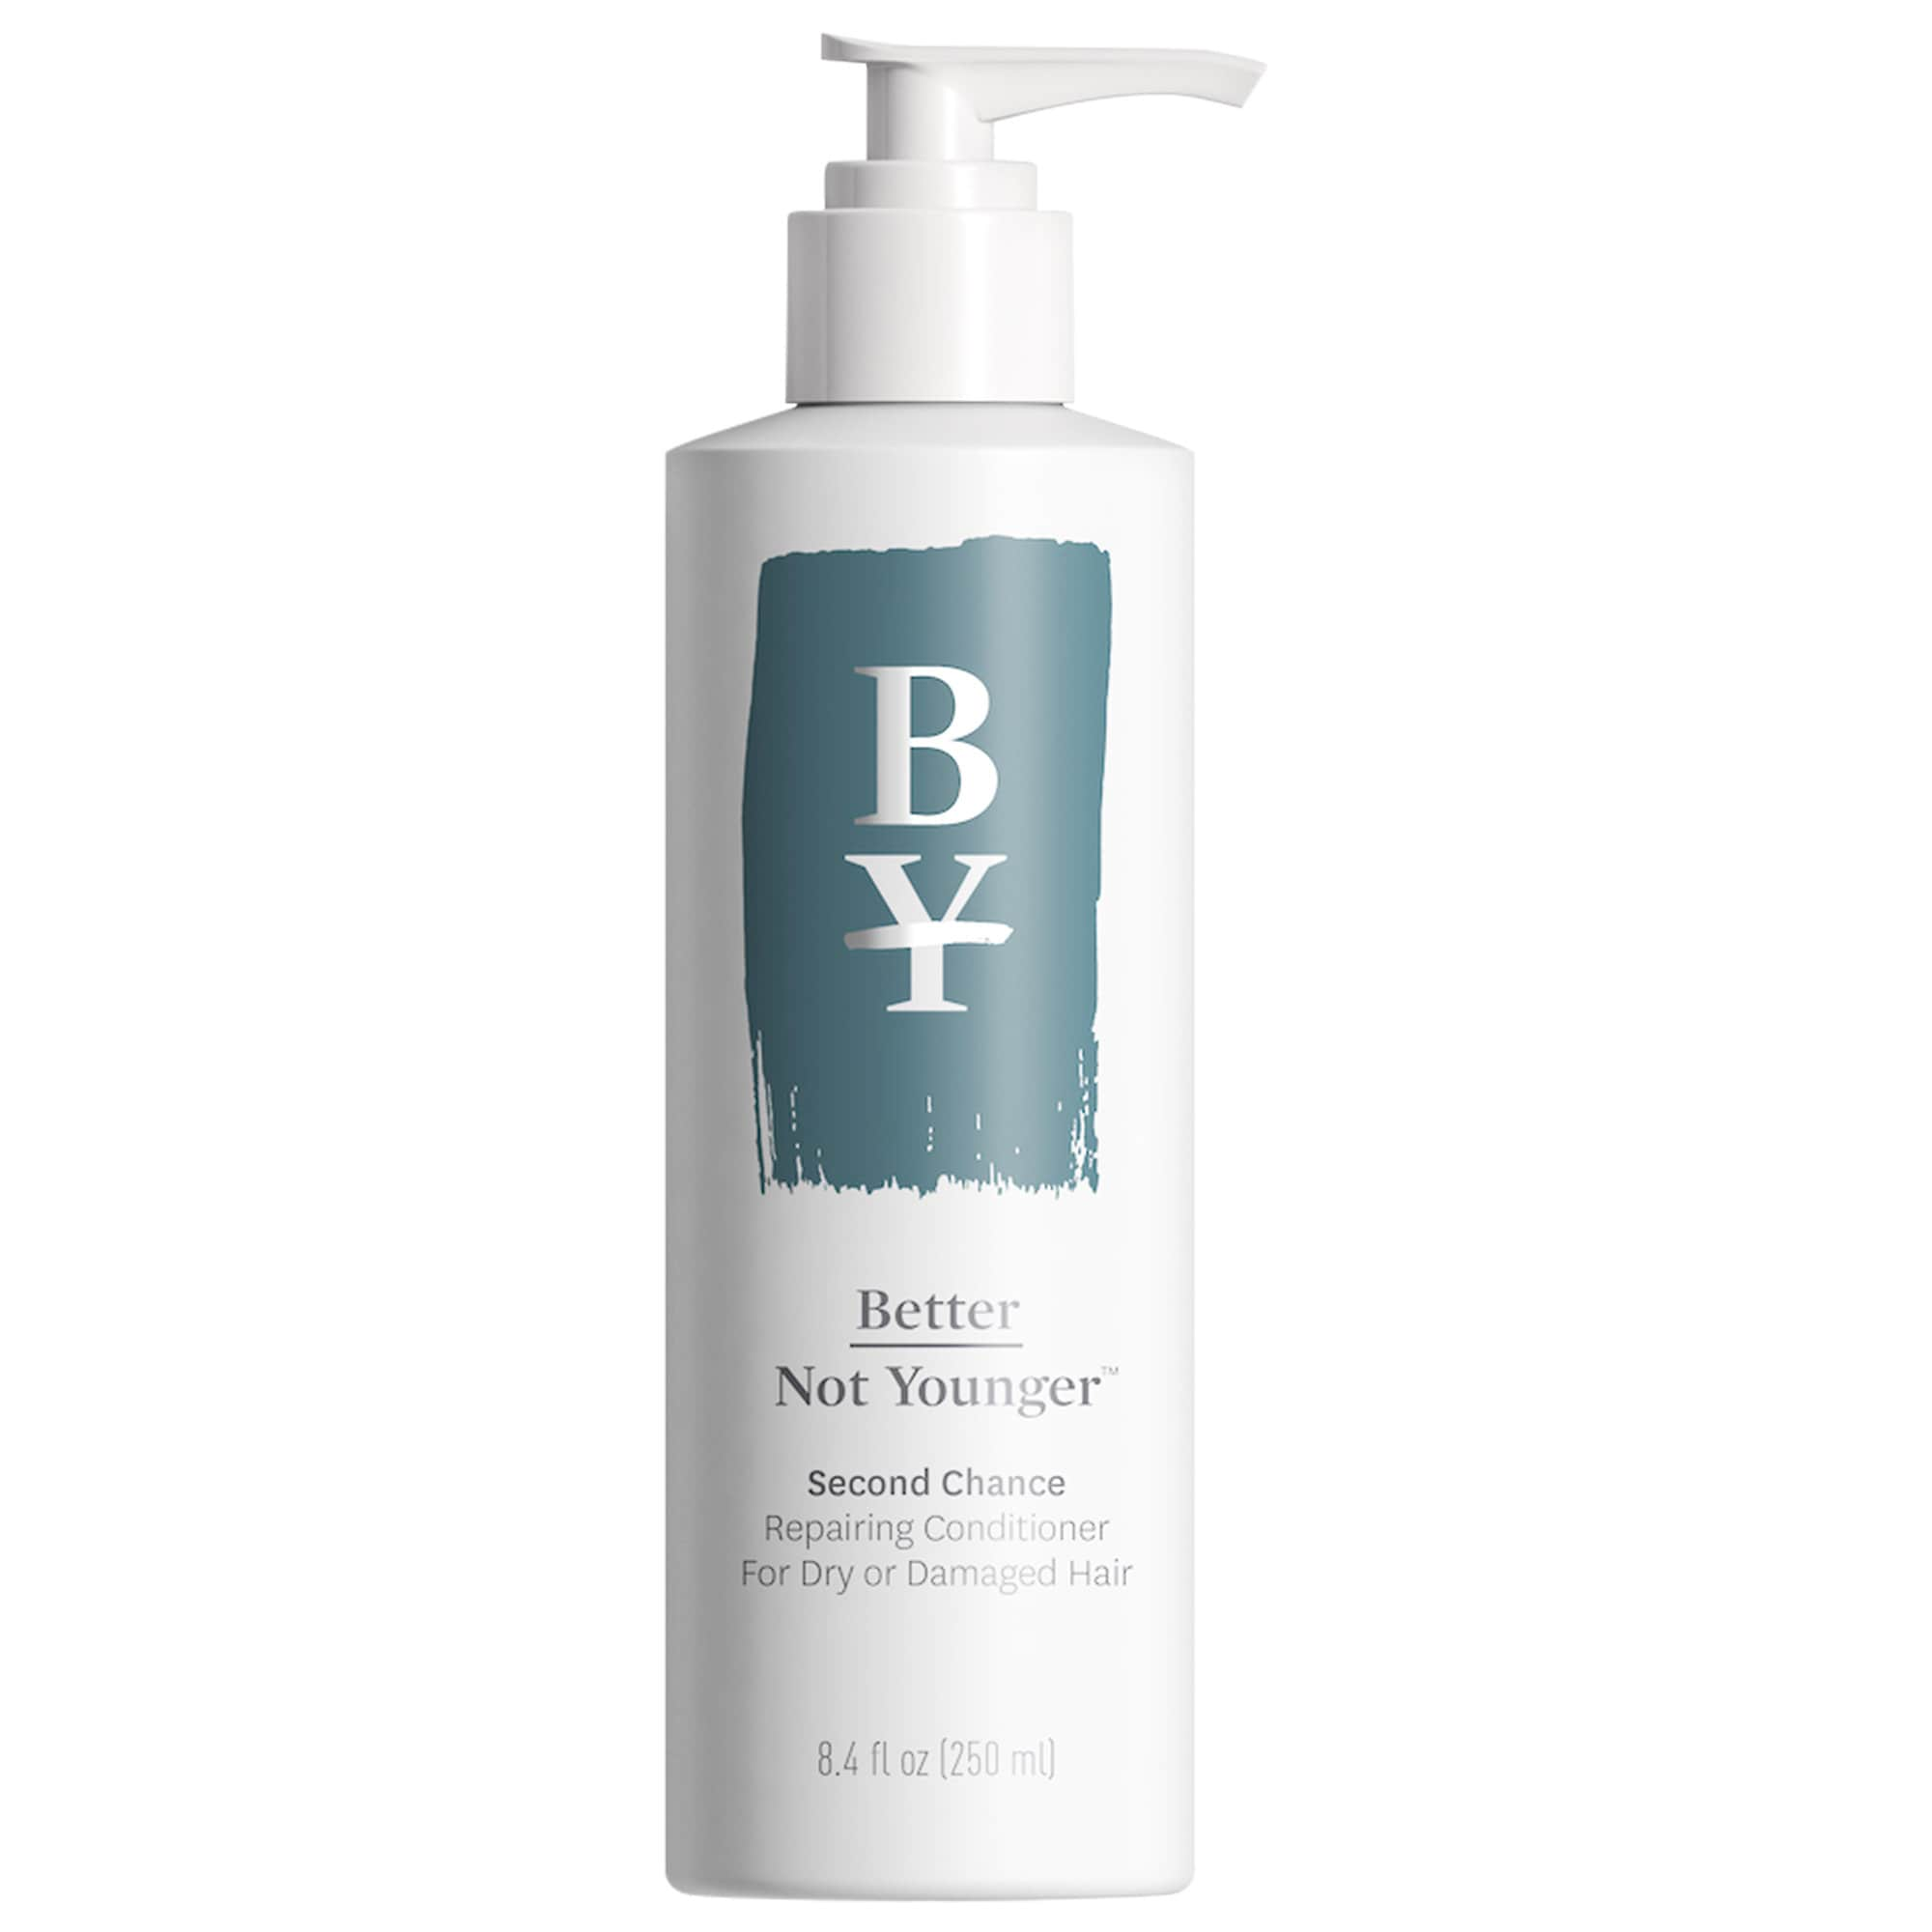 Better Not Younger Second Chance Repairing Conditioner